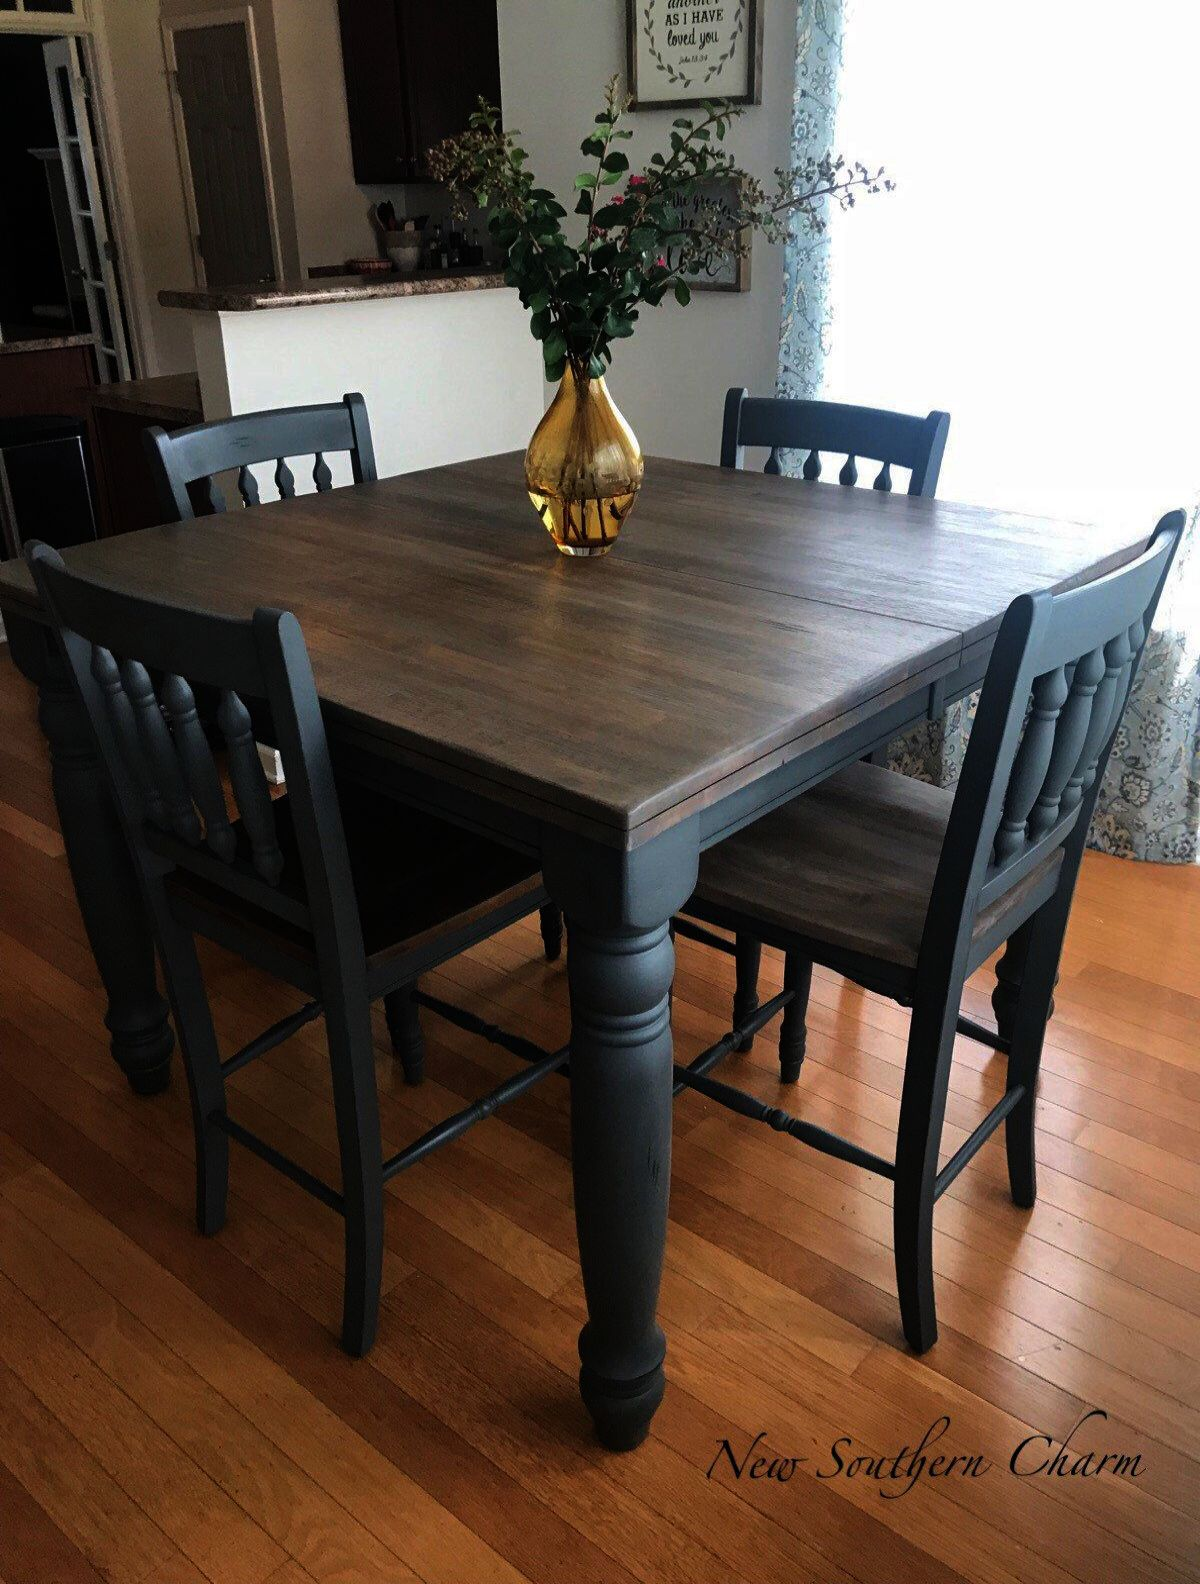 Furniture Row Tyler Tx Whether Furniture Fair New Bern Nc Refurbished Kitchen Tables Dining Table Makeover Kitchen Table Makeover